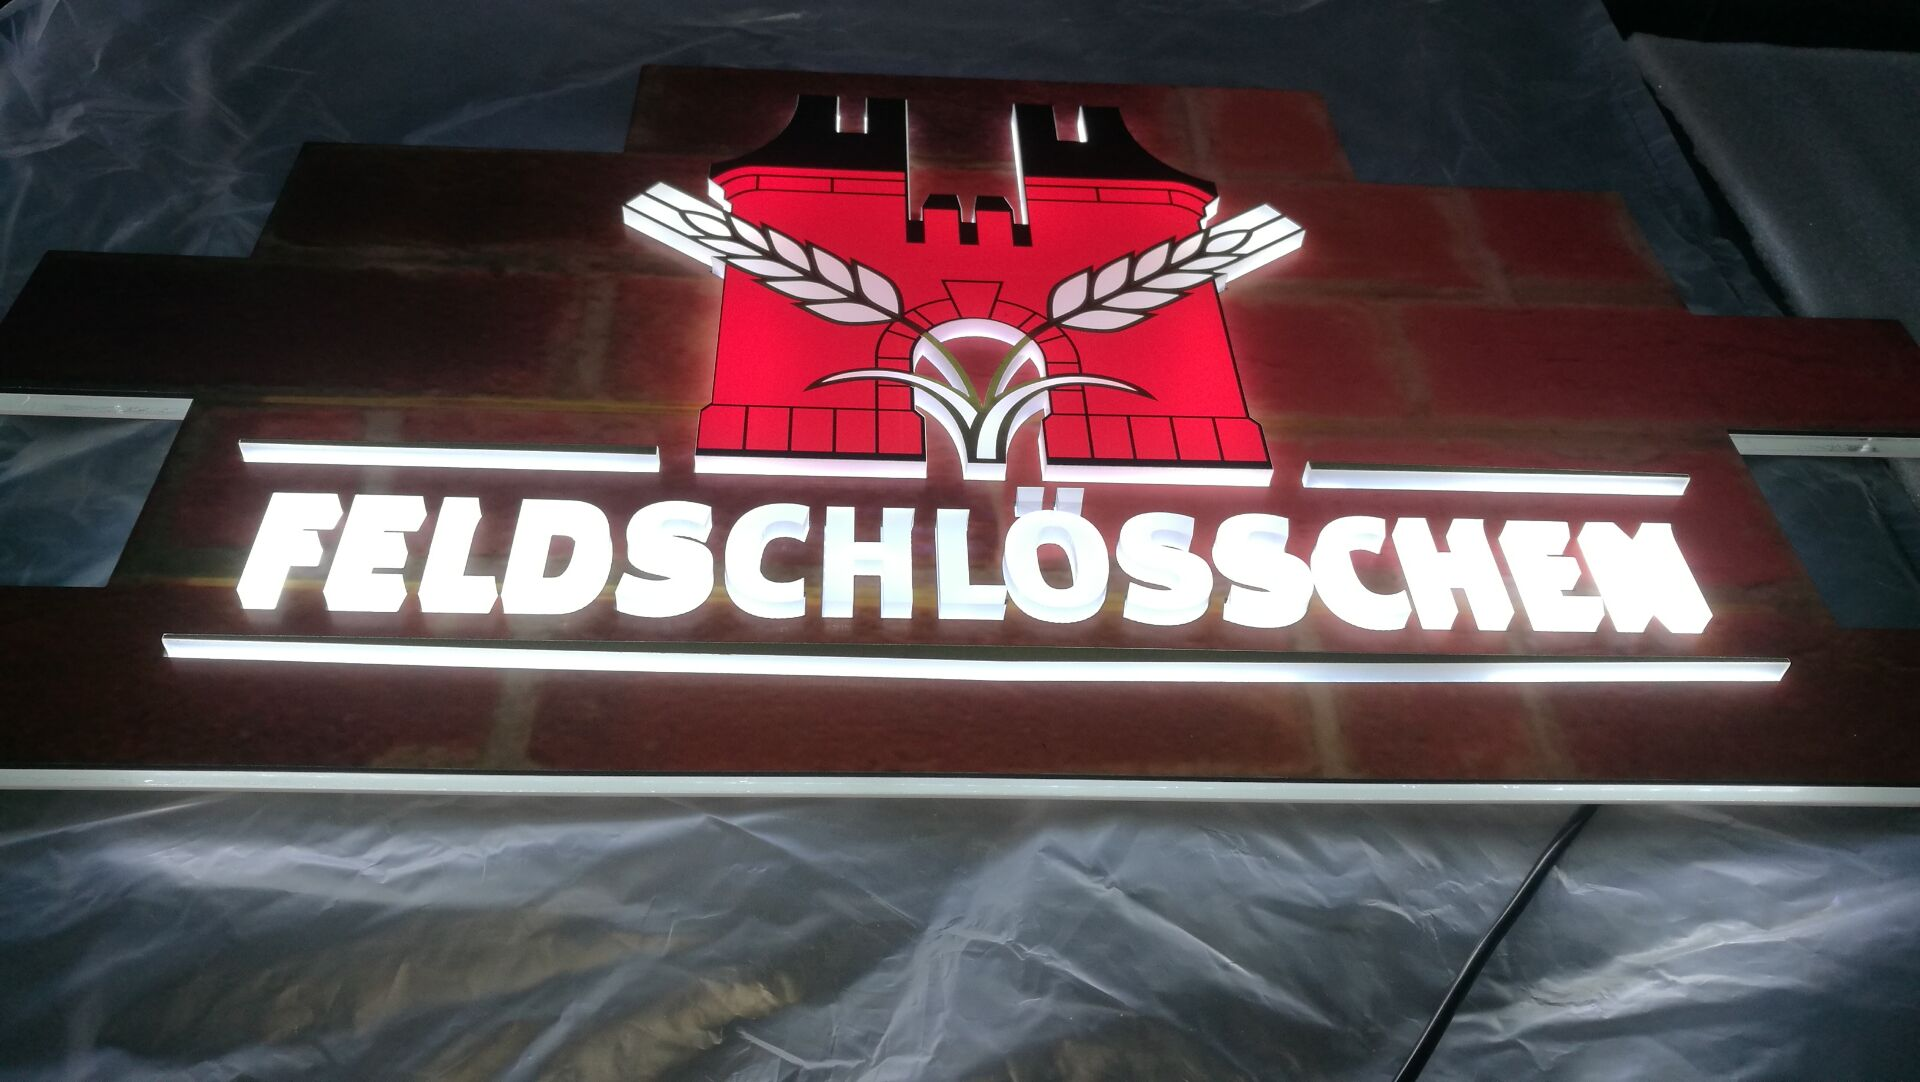 3D RAISED light sign